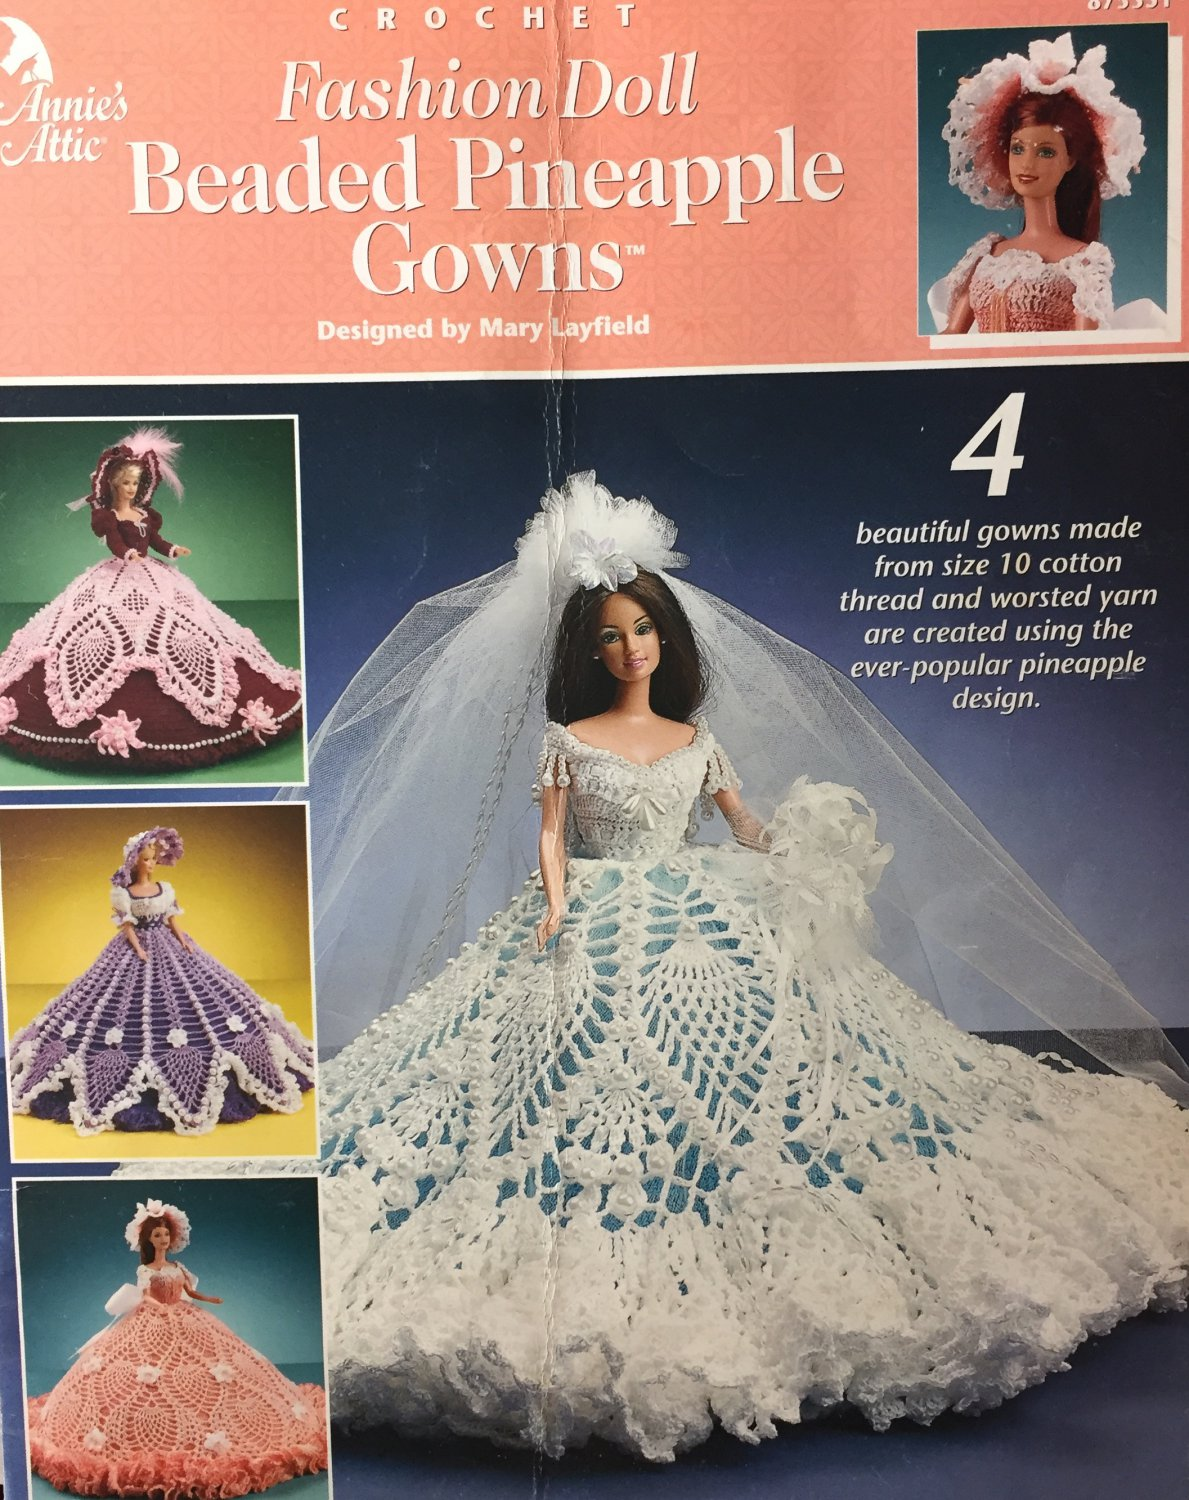 Annie's Attic 873351 Fashion Doll Beaded Pineapple Gowns Mary Layfield Crochet pattern